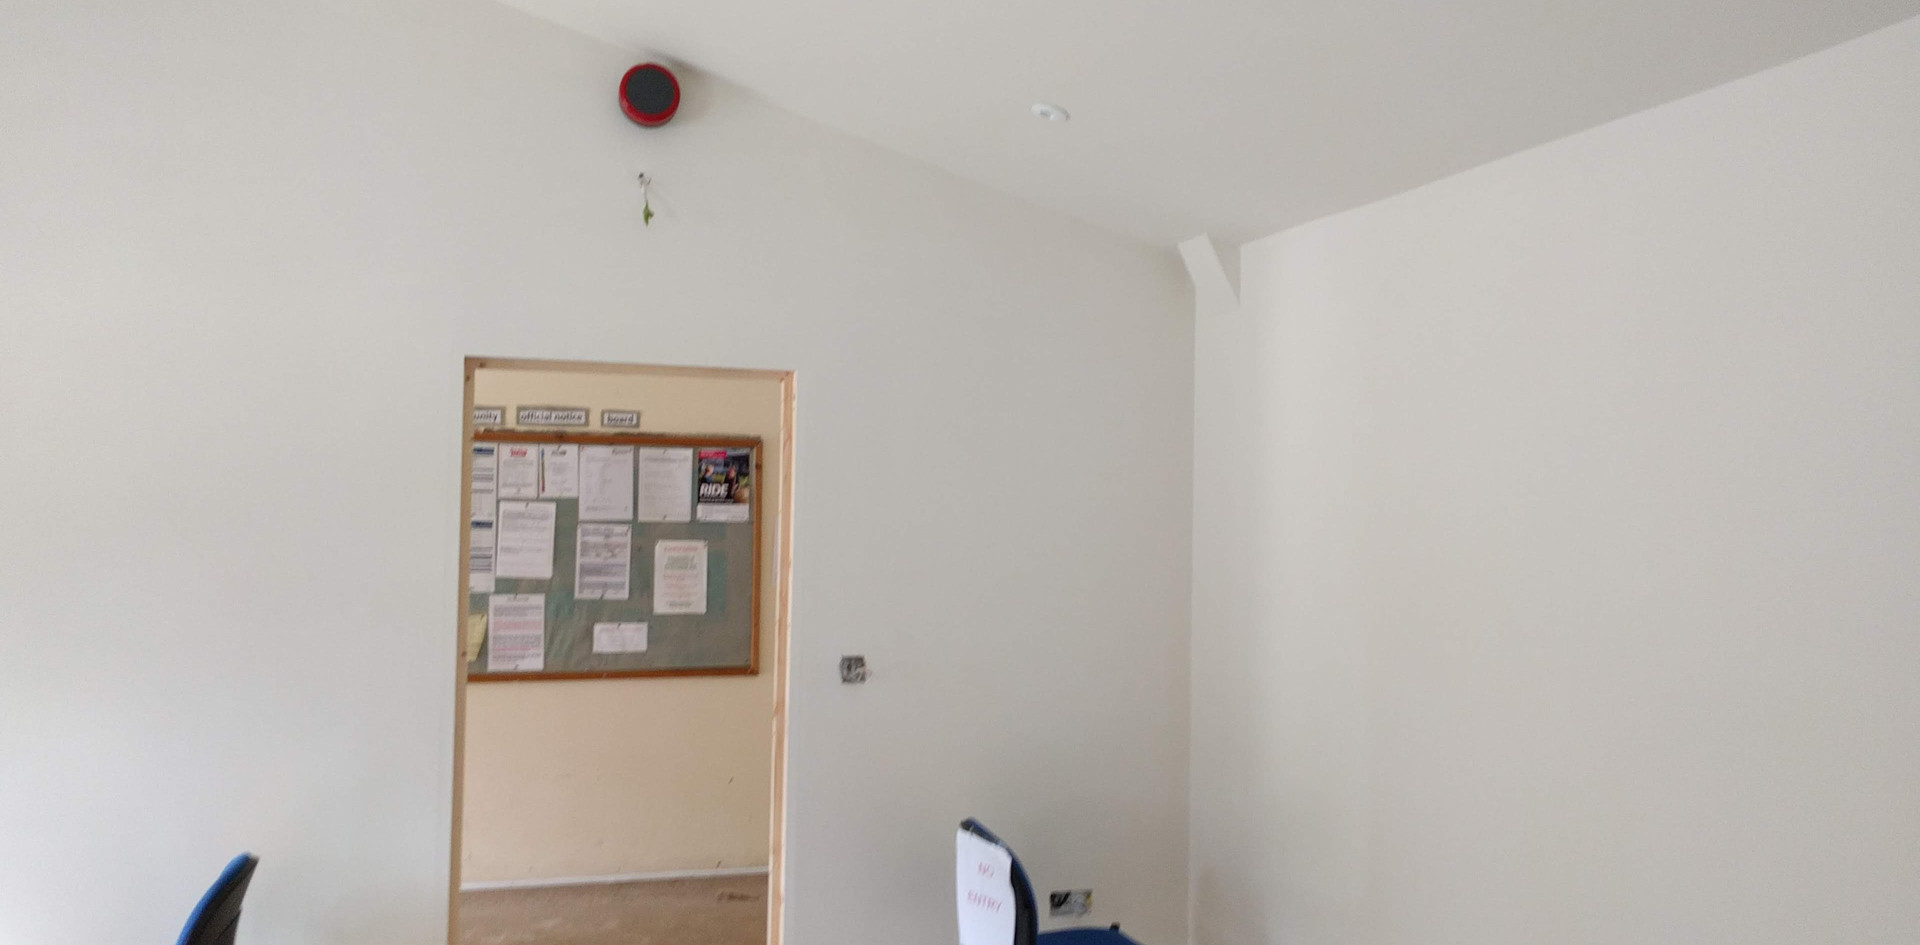 electrics going in